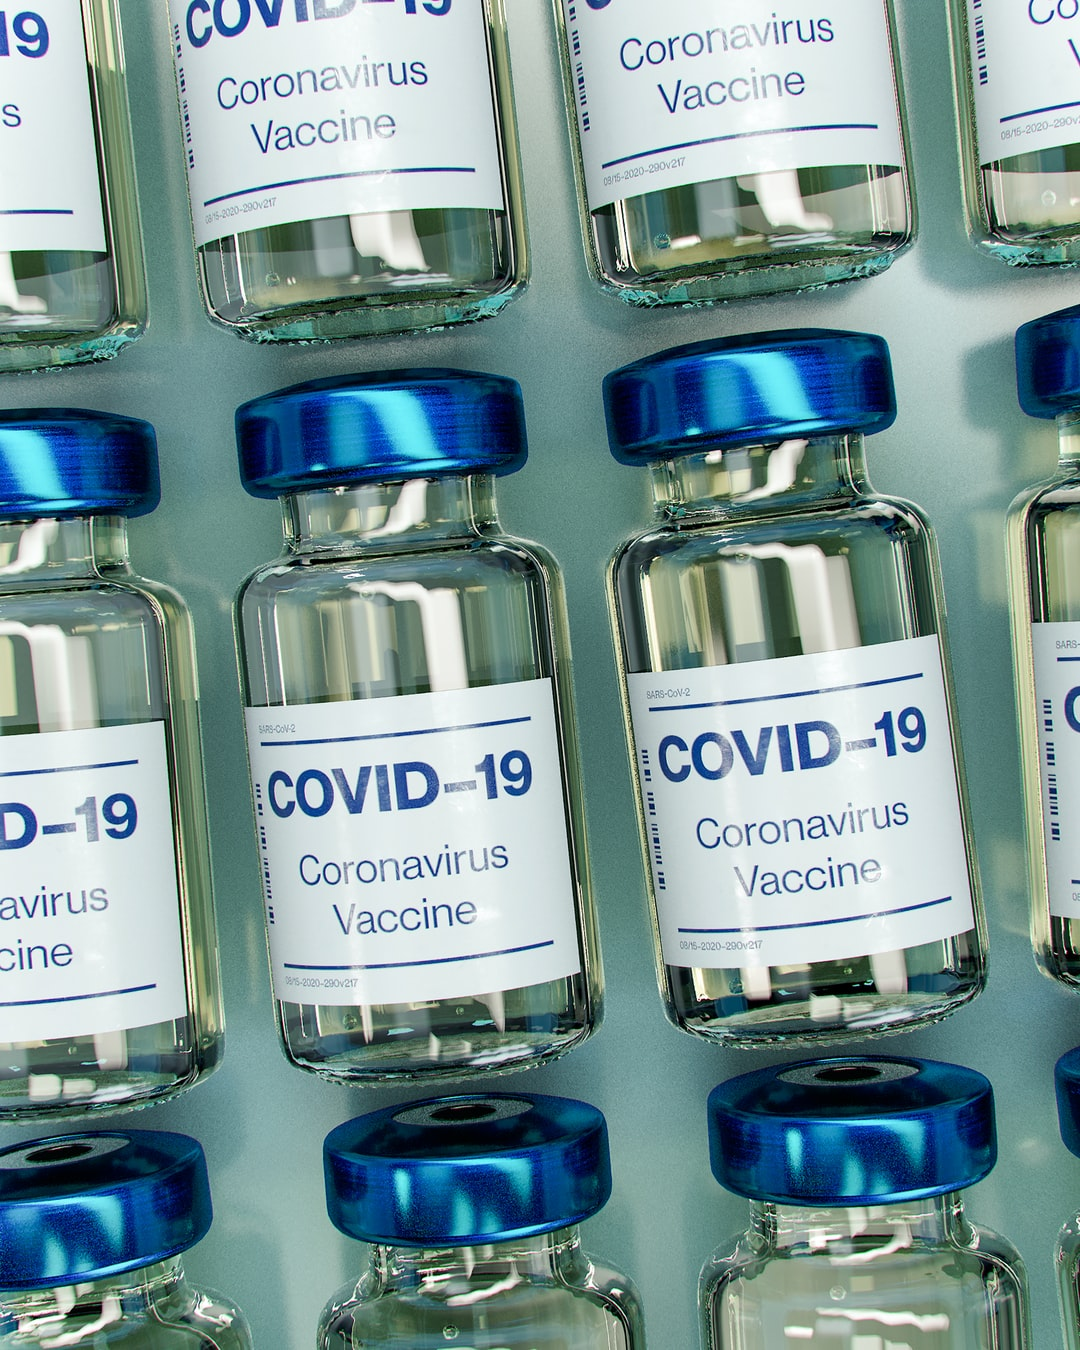 Covid-19 Vaccine Bottle Mockup (does not depict actual vaccine).